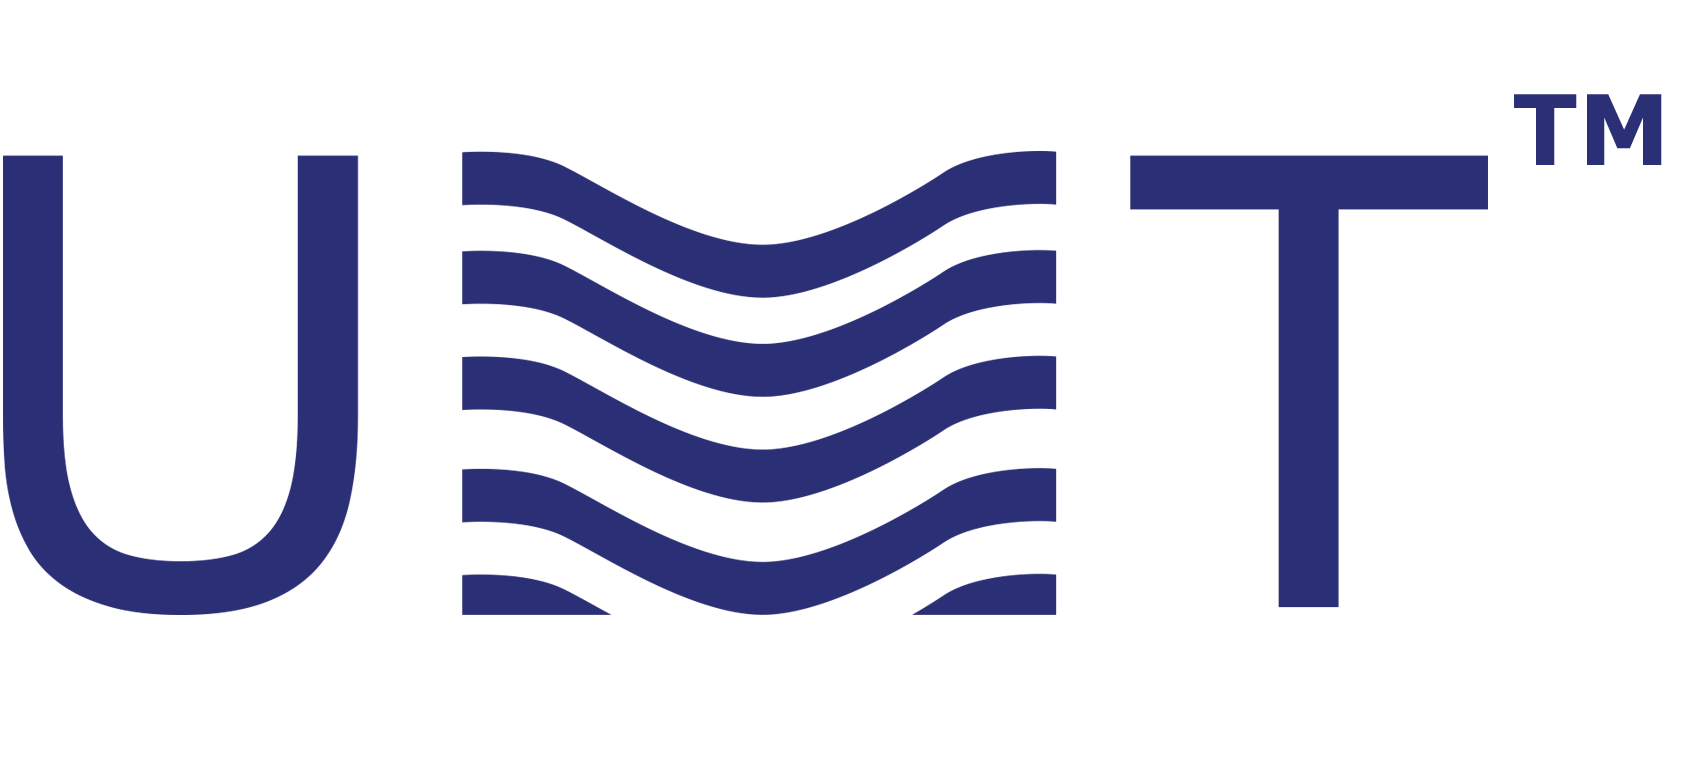 umt-tv logotype